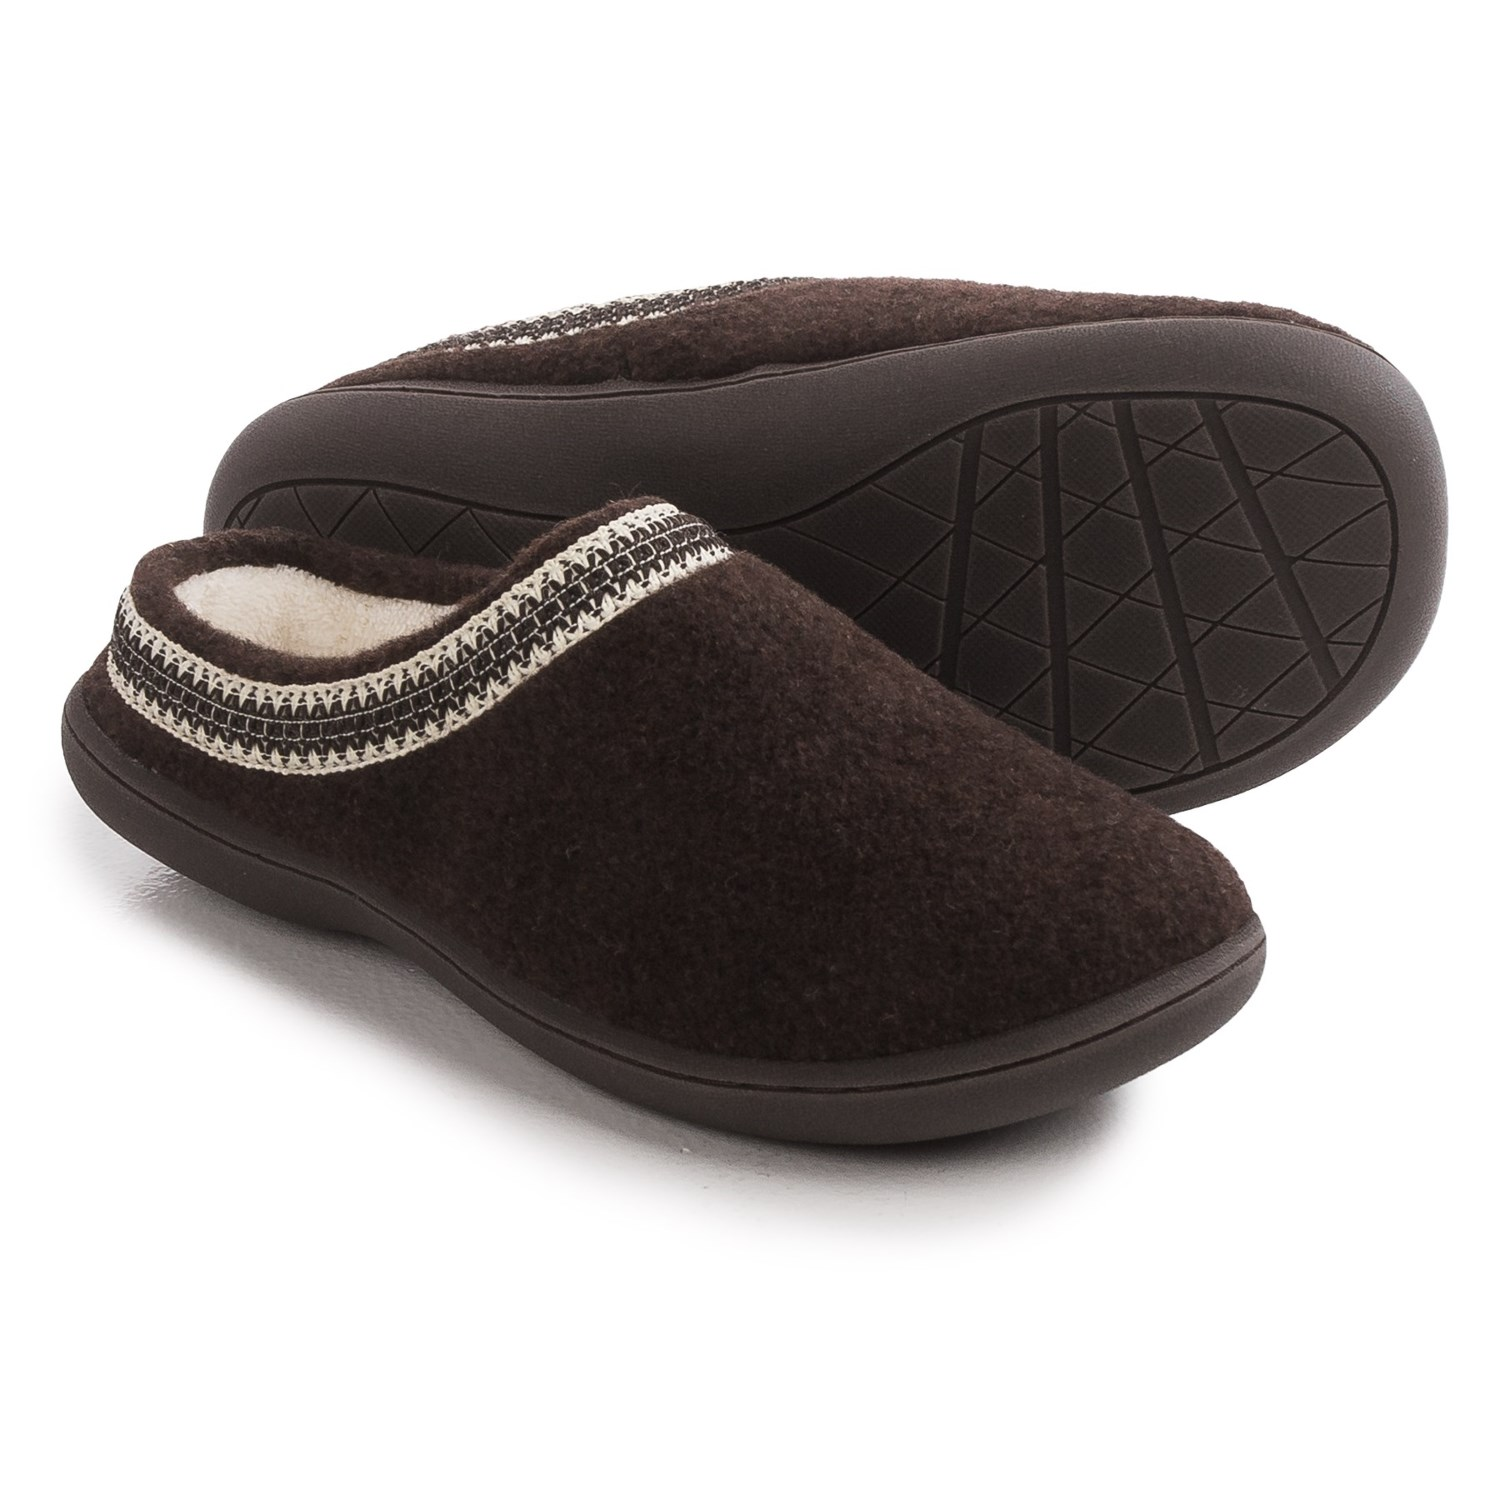 Clarks Stitched Clog Slippers For Women Save 69